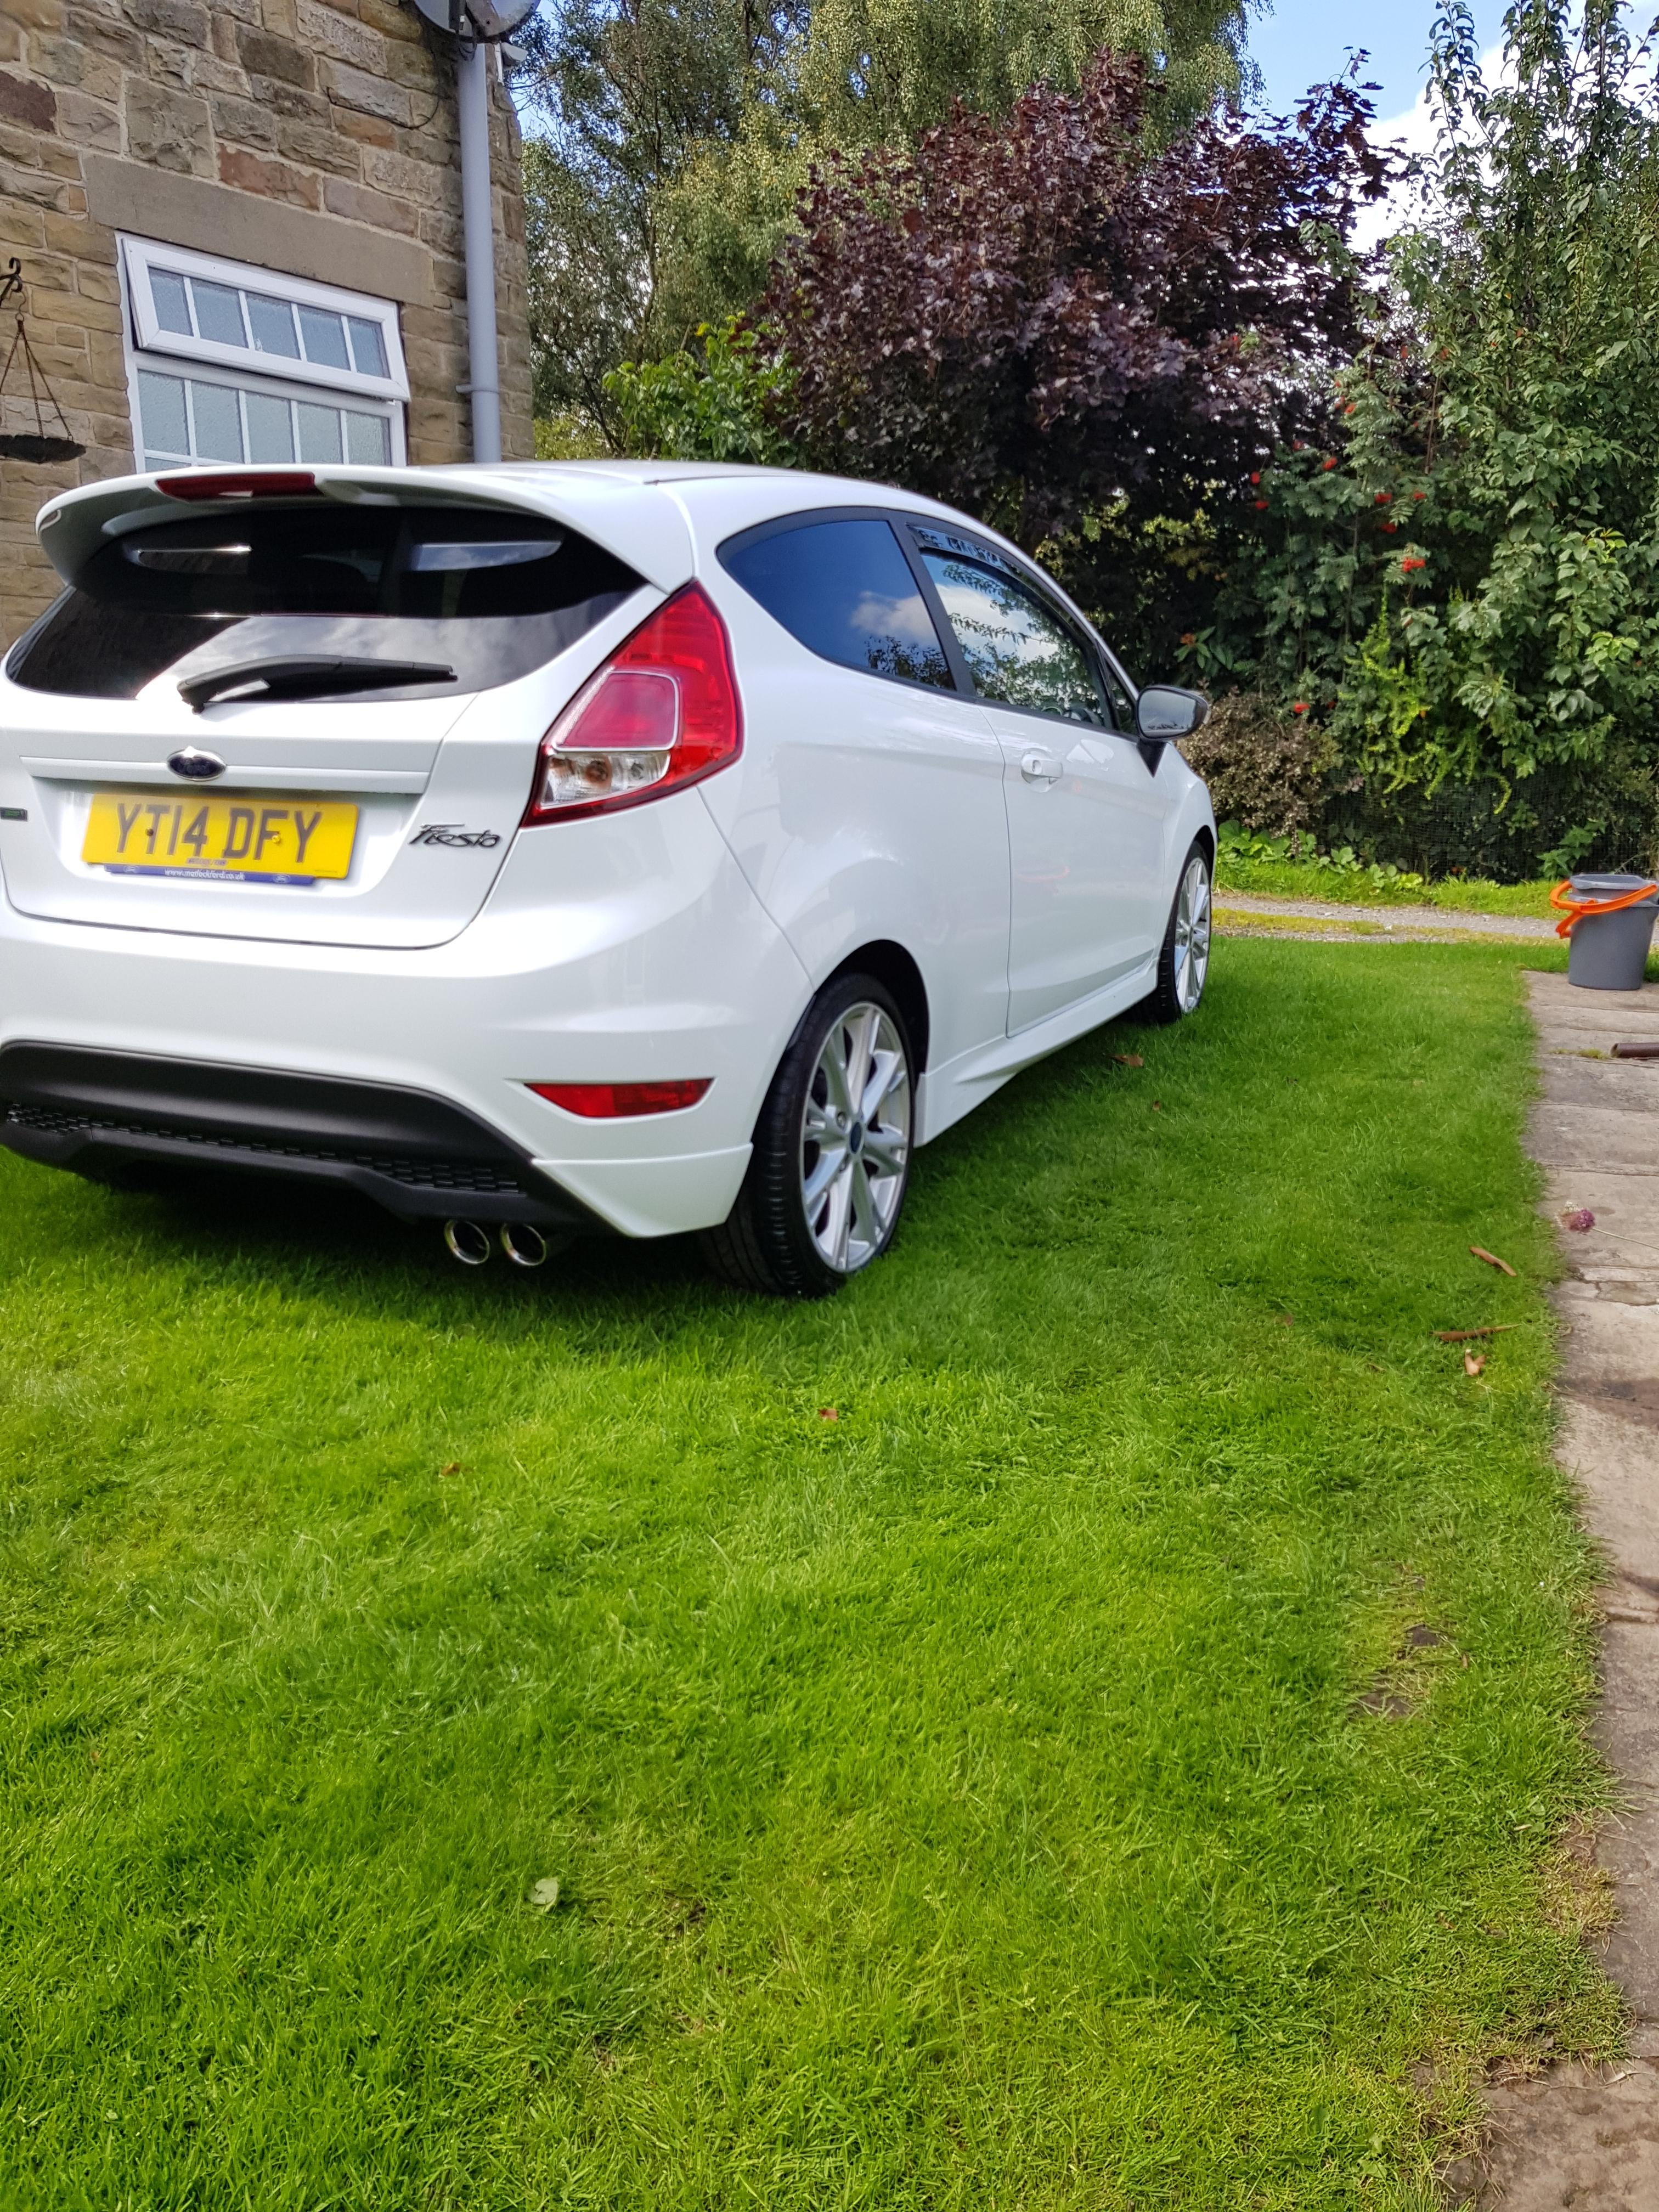 St Rear Diffuser For Mk 7 5 Zetec S Ford Fiesta Club Ford Owners Club Ford Forums